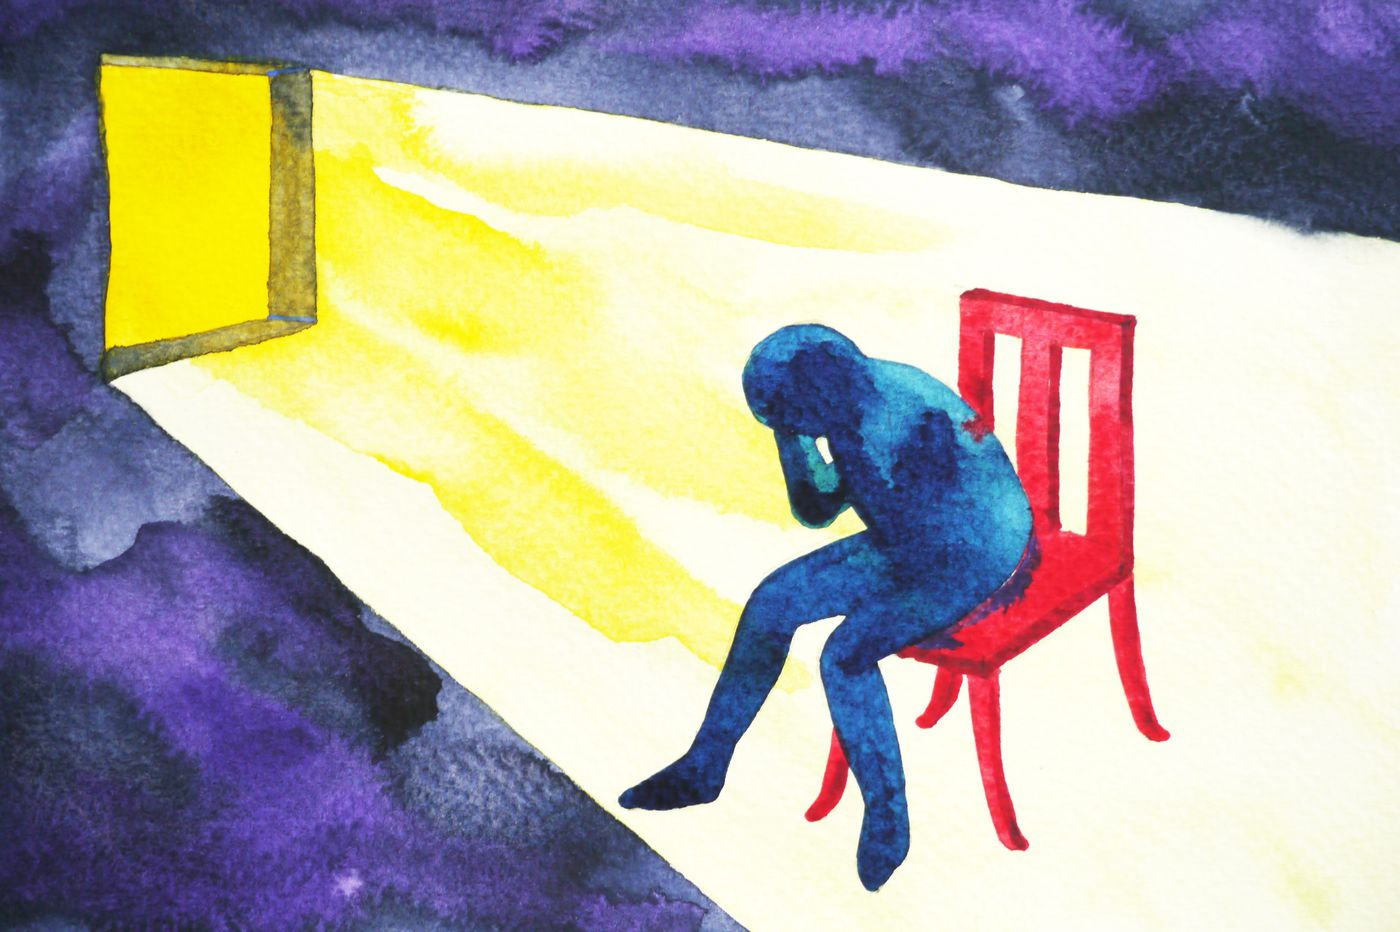 As students face mounting pressure, teachers feel increasingly helpless   Perspective